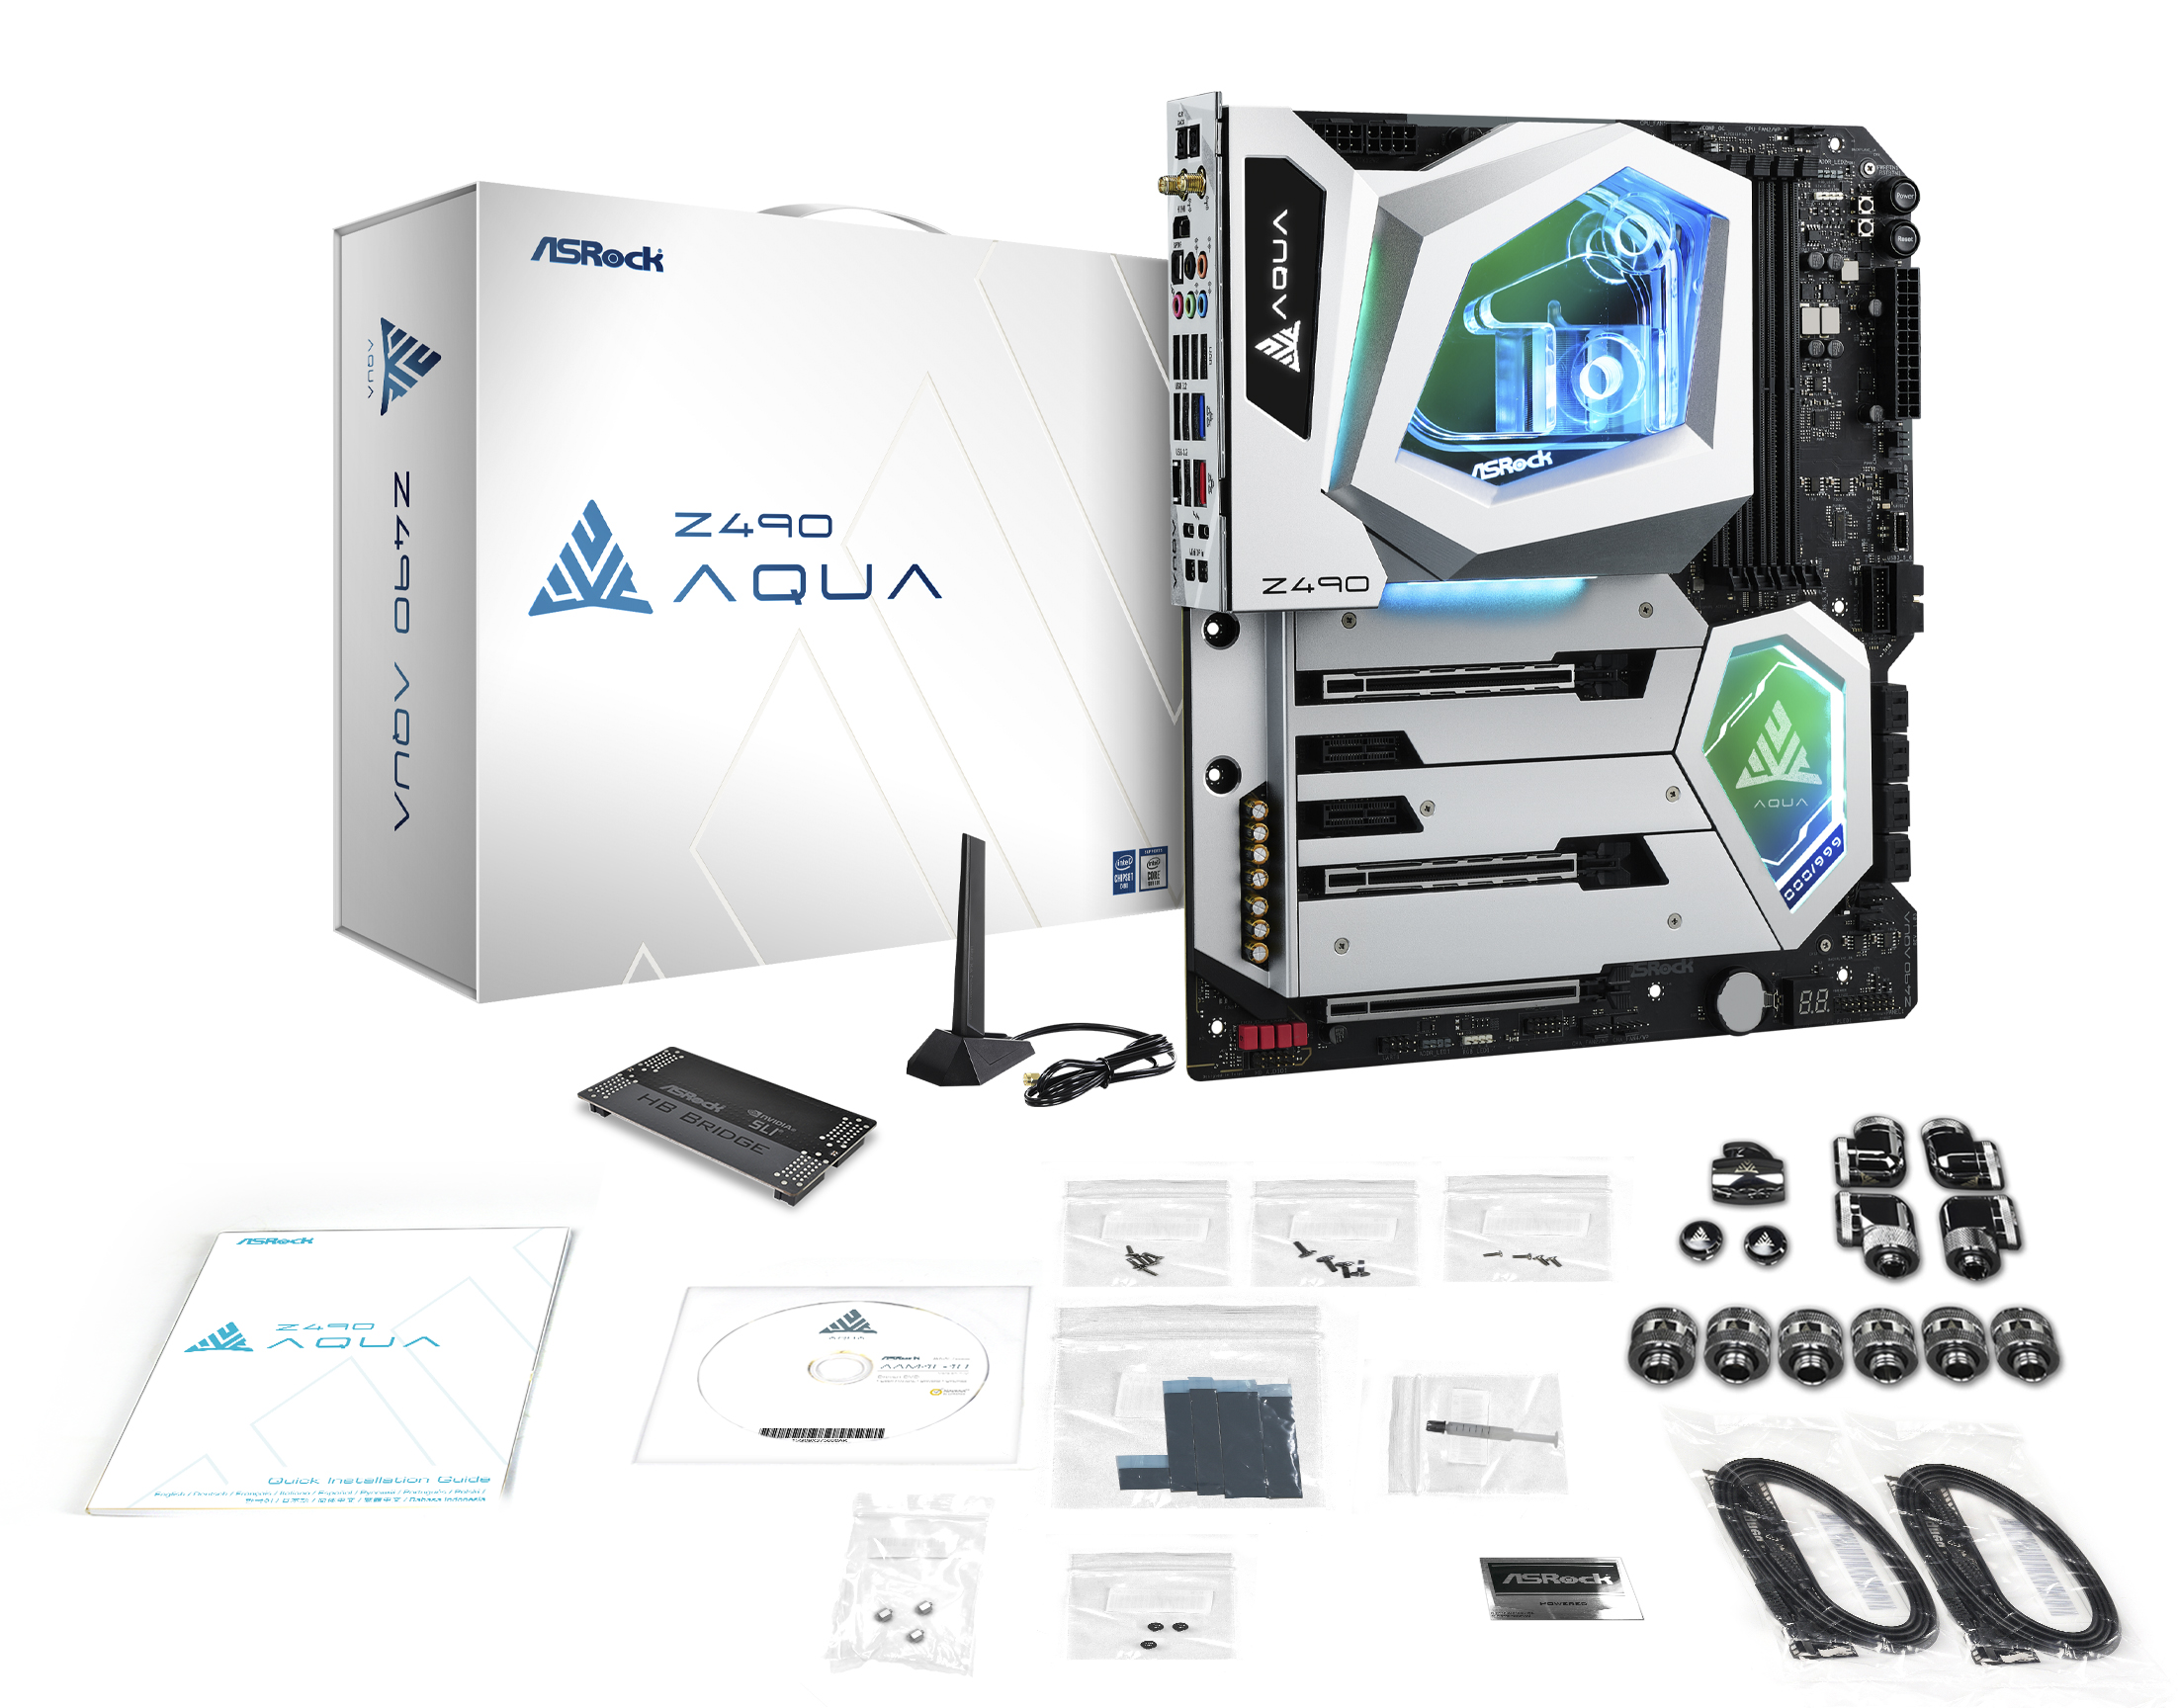 A large marketing image providing additional information about the product ASRock Z490 Aqua LGA1200 ATX Desktop Motherboard - Additional alt info not provided